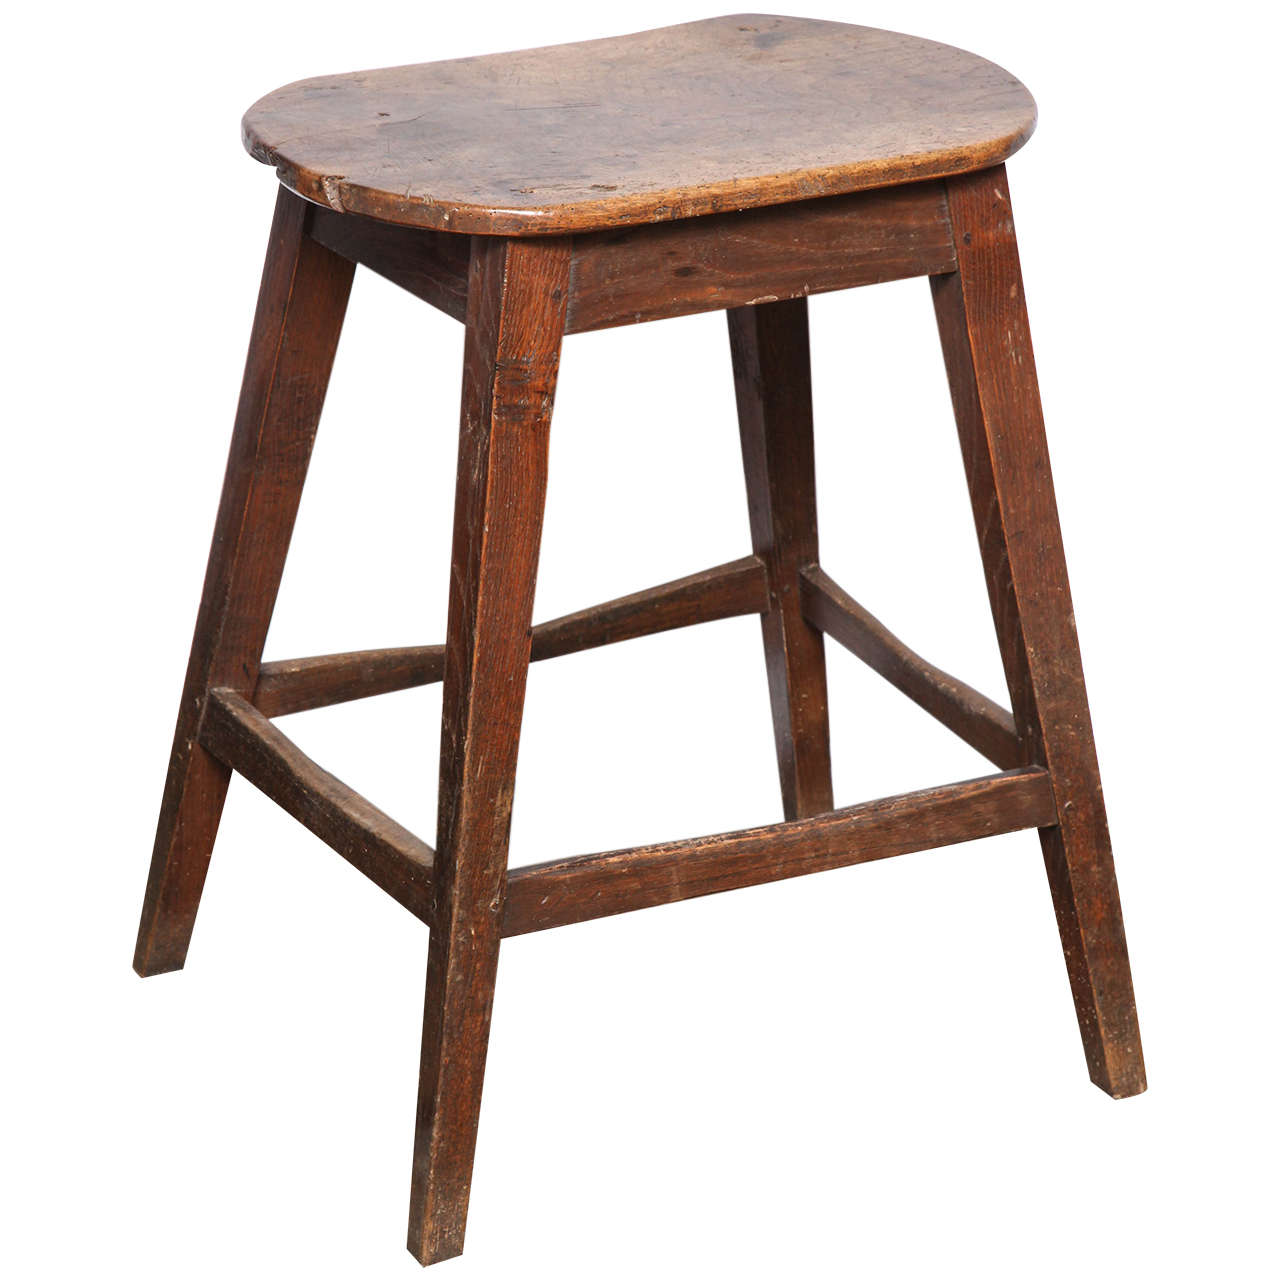 Unusually Large Oval Kitchen Stool For Sale